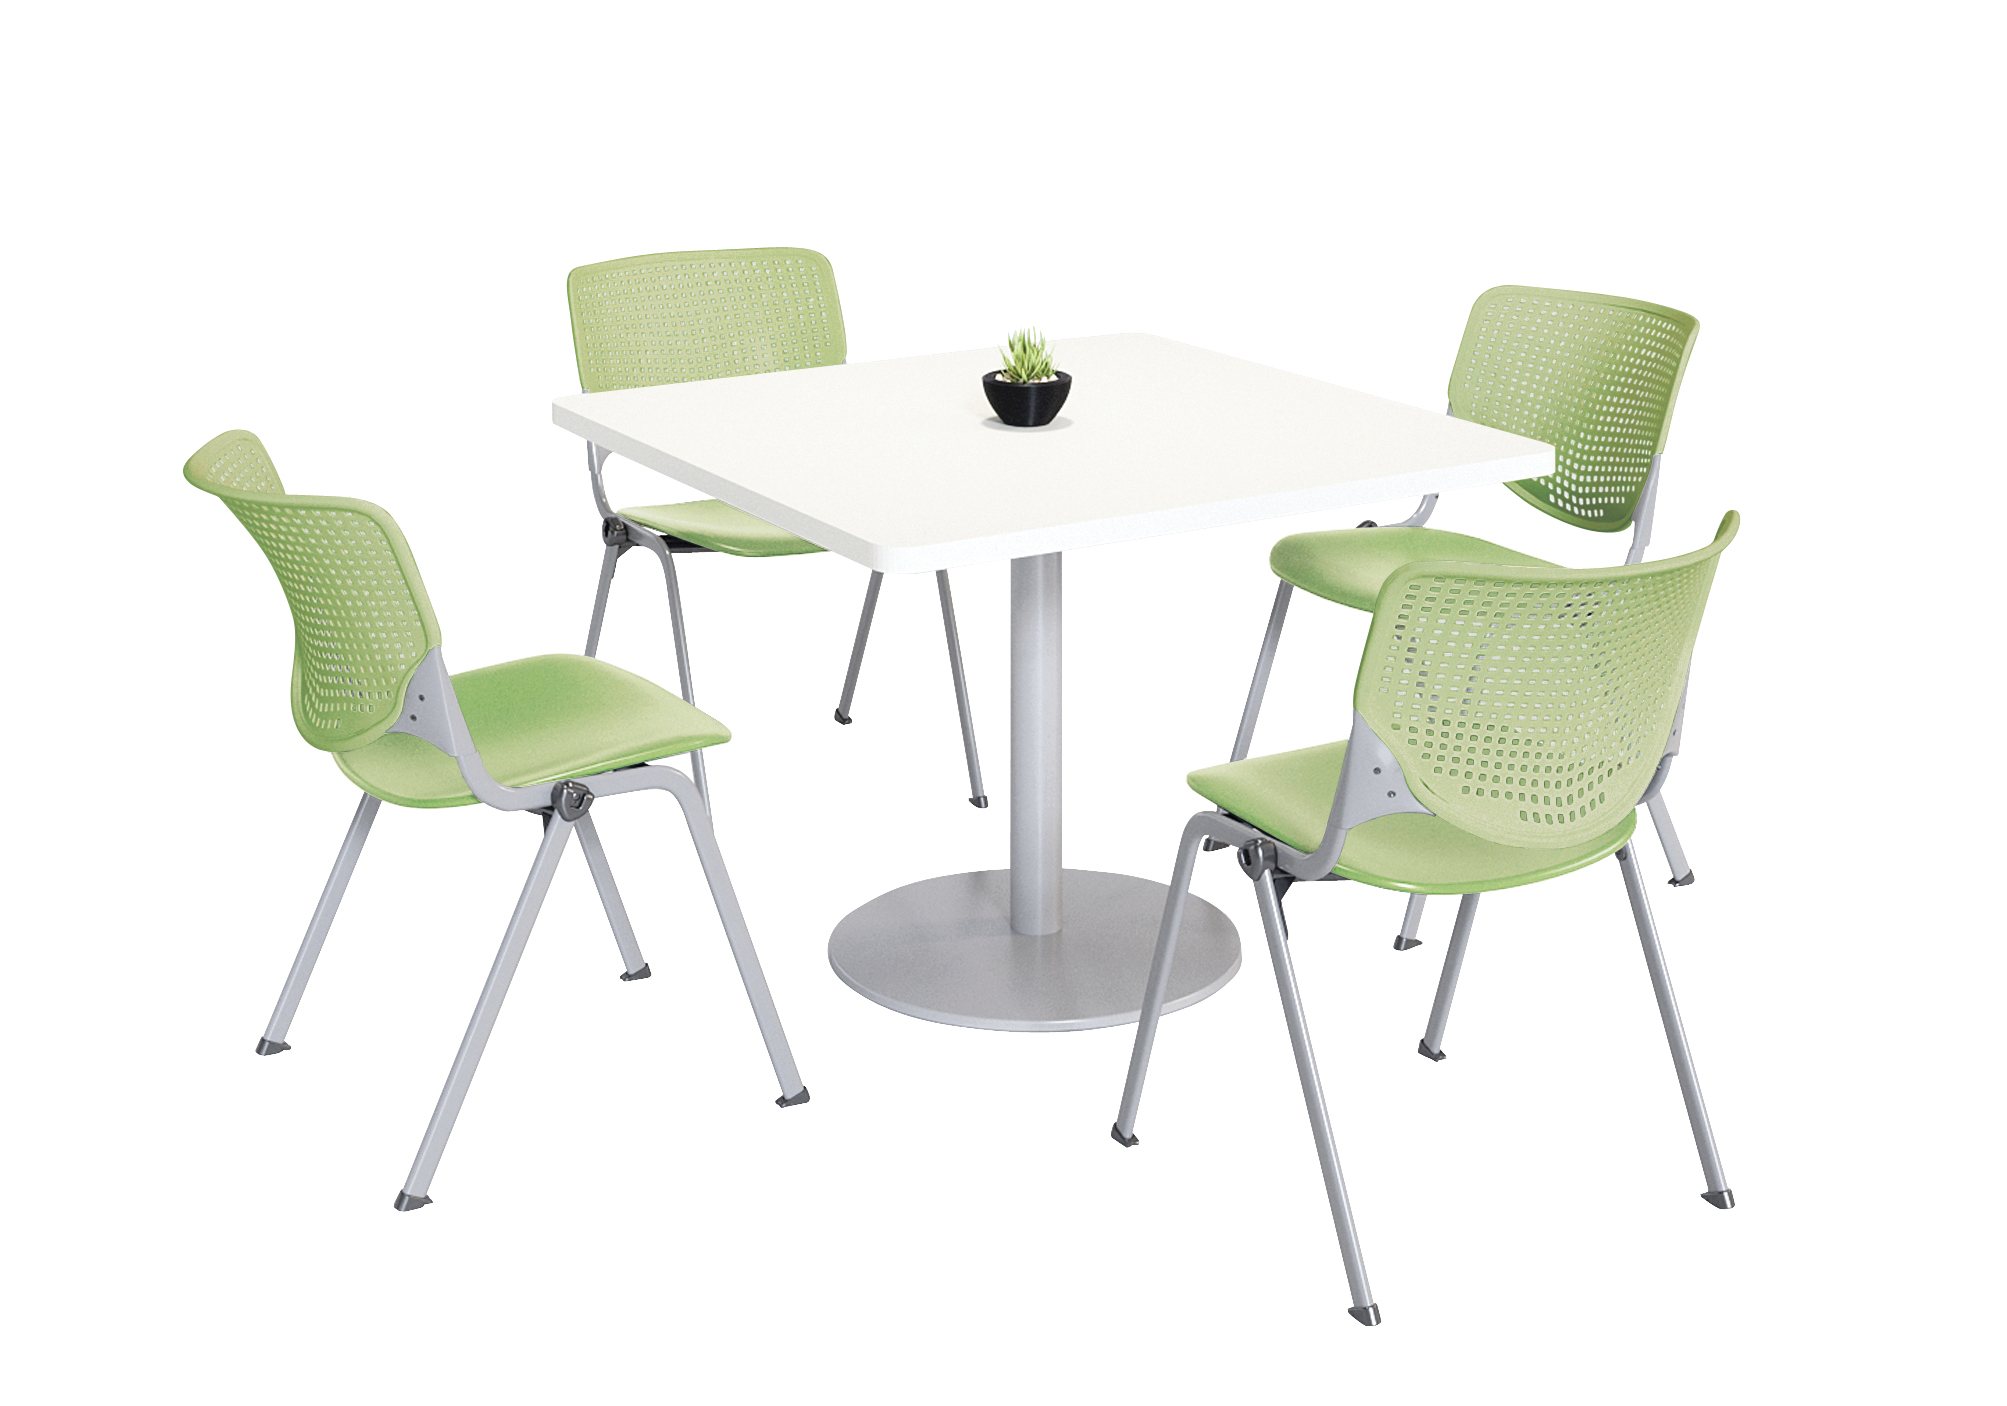 Lime Green Chairs Kool Table Chair Set White Table Top Lime Green Chairs